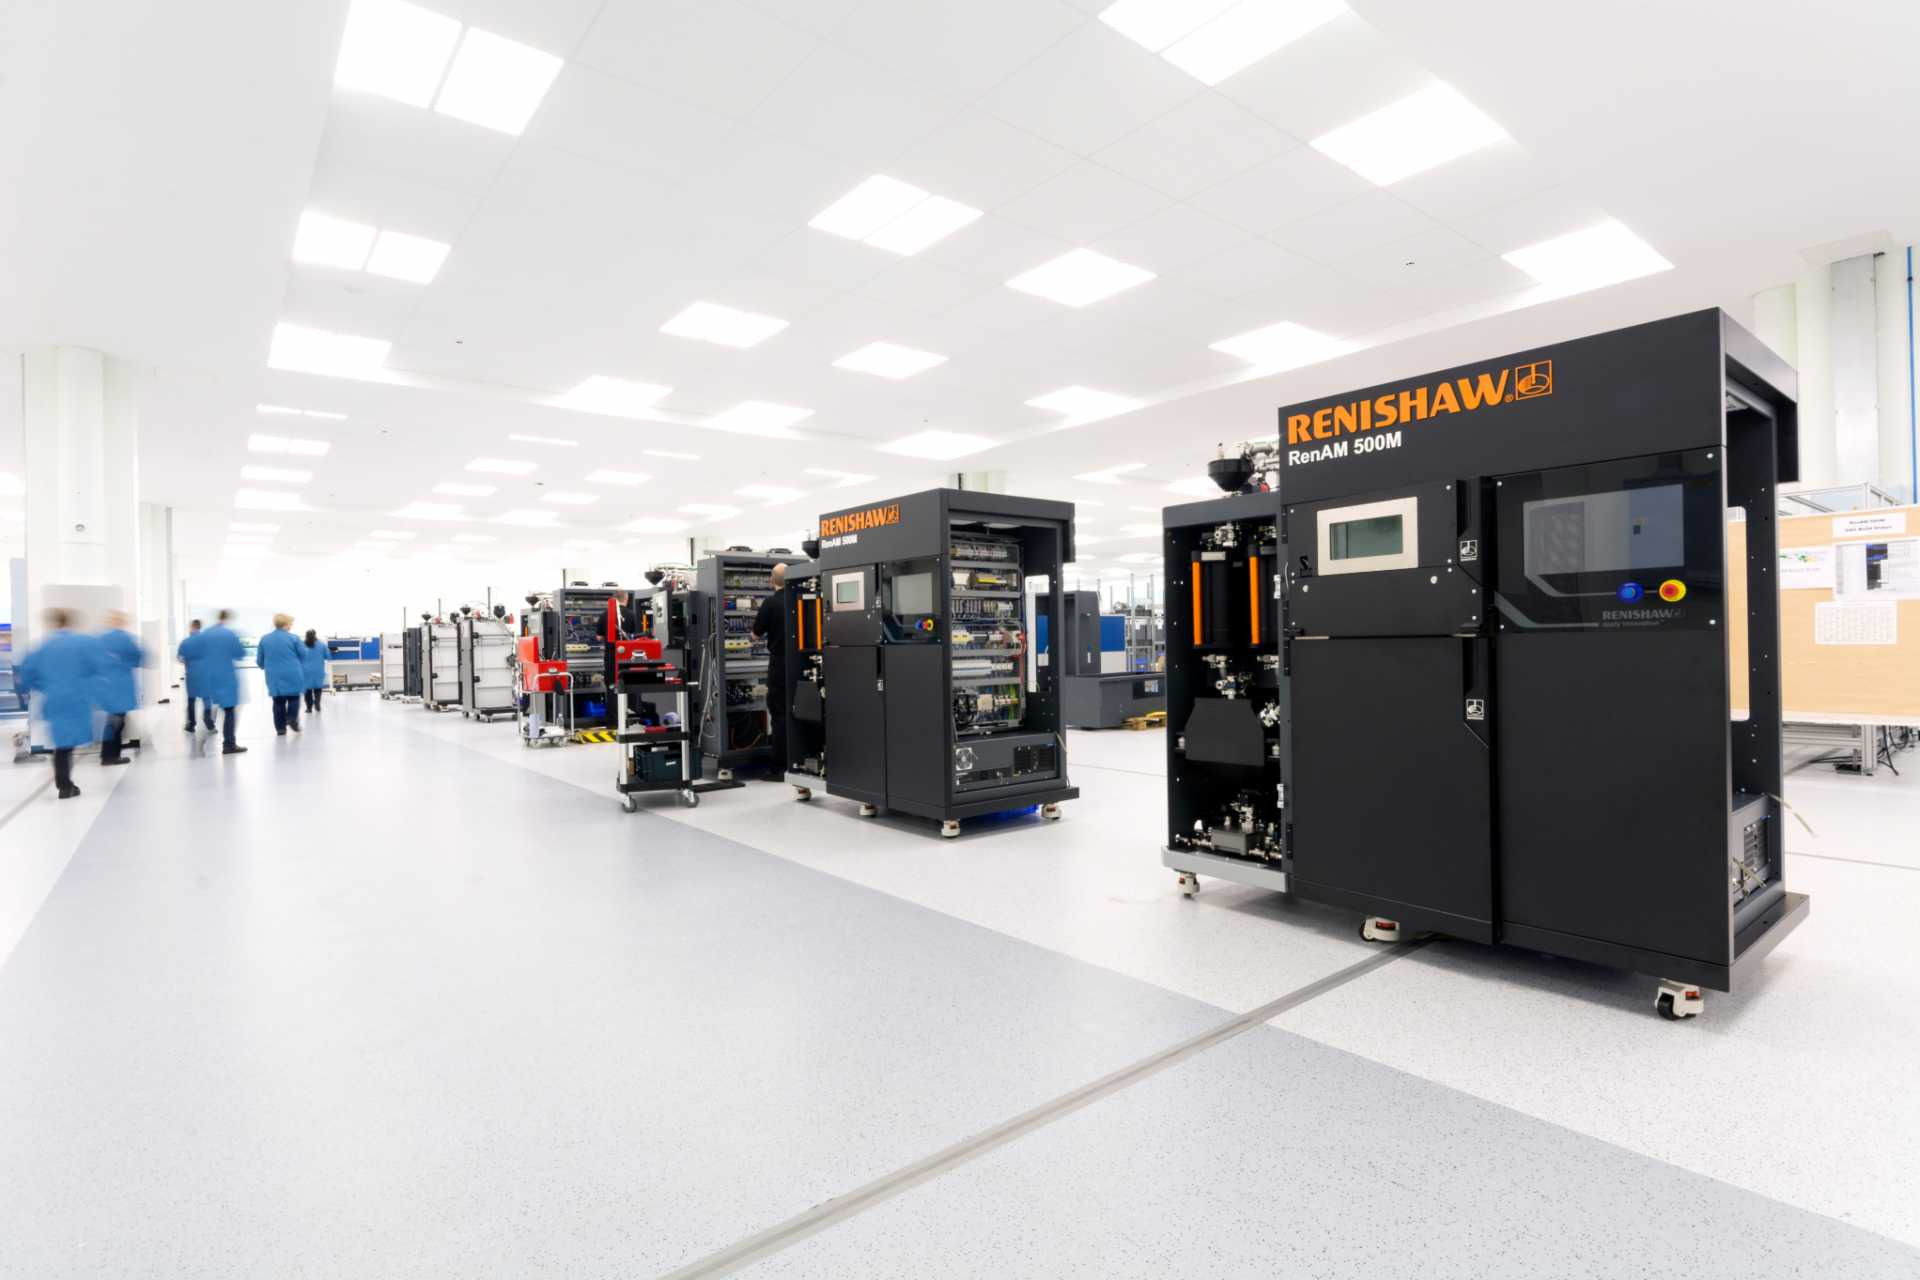 Renishaw announce maintained interim dividend of 14p per share